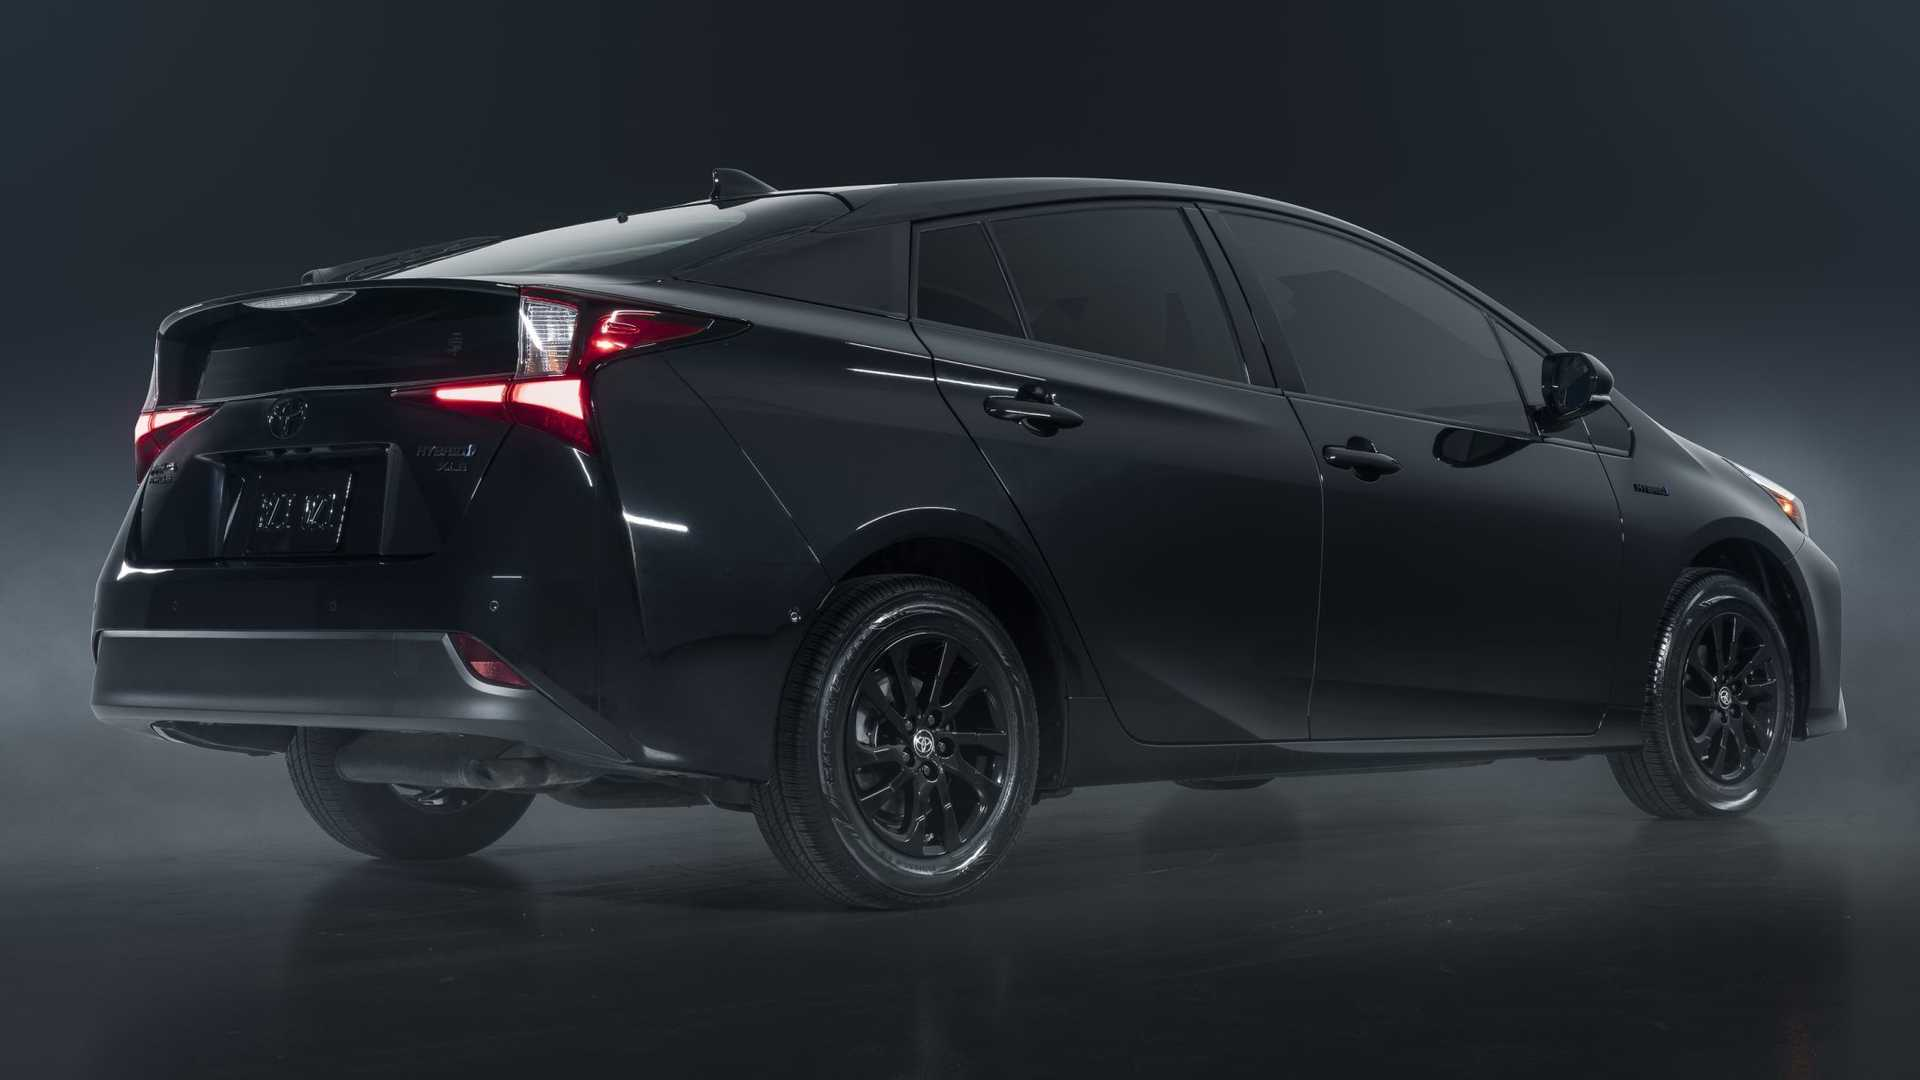 https://cdn.motor1.com/images/mgl/MBRxp/s6/2022-toyota-prius-nightshade-special-edition-rear-angle.jpg